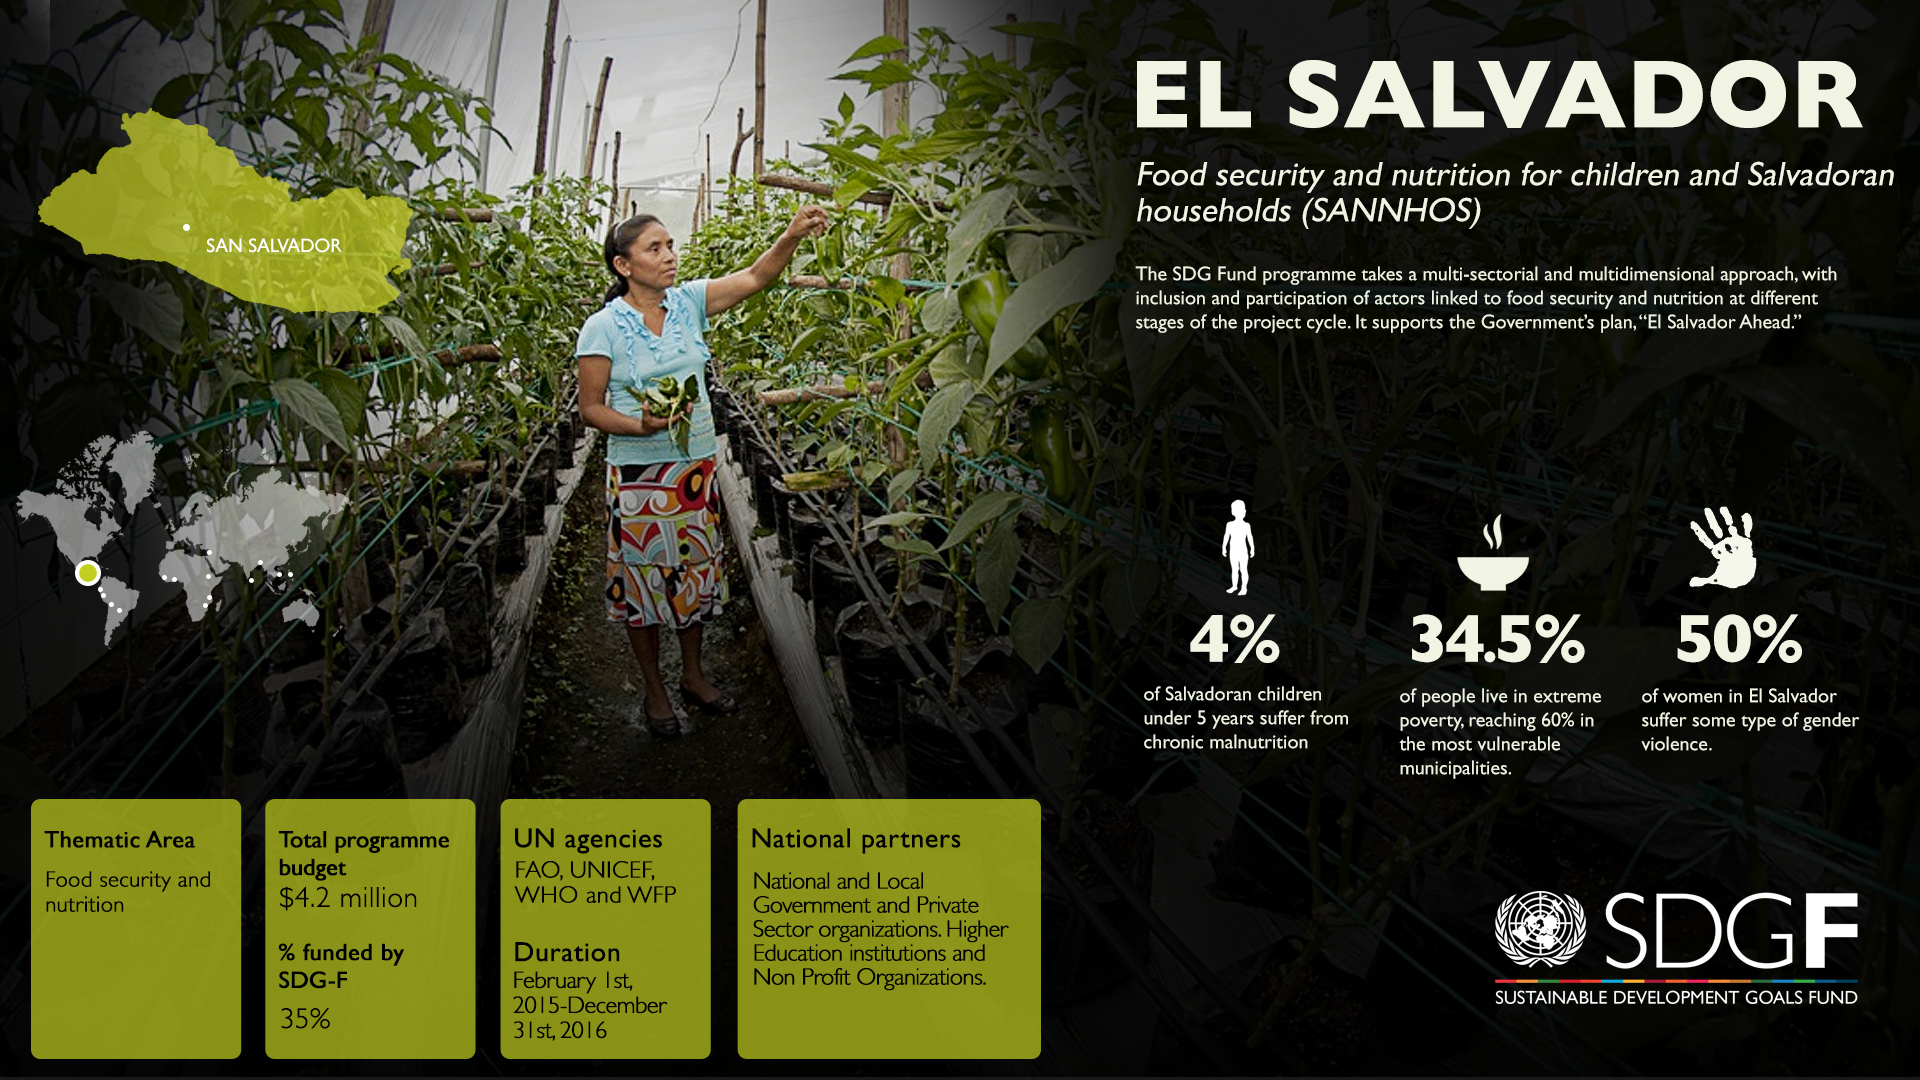 Food Security And Nutrition For Children And Salvadoran